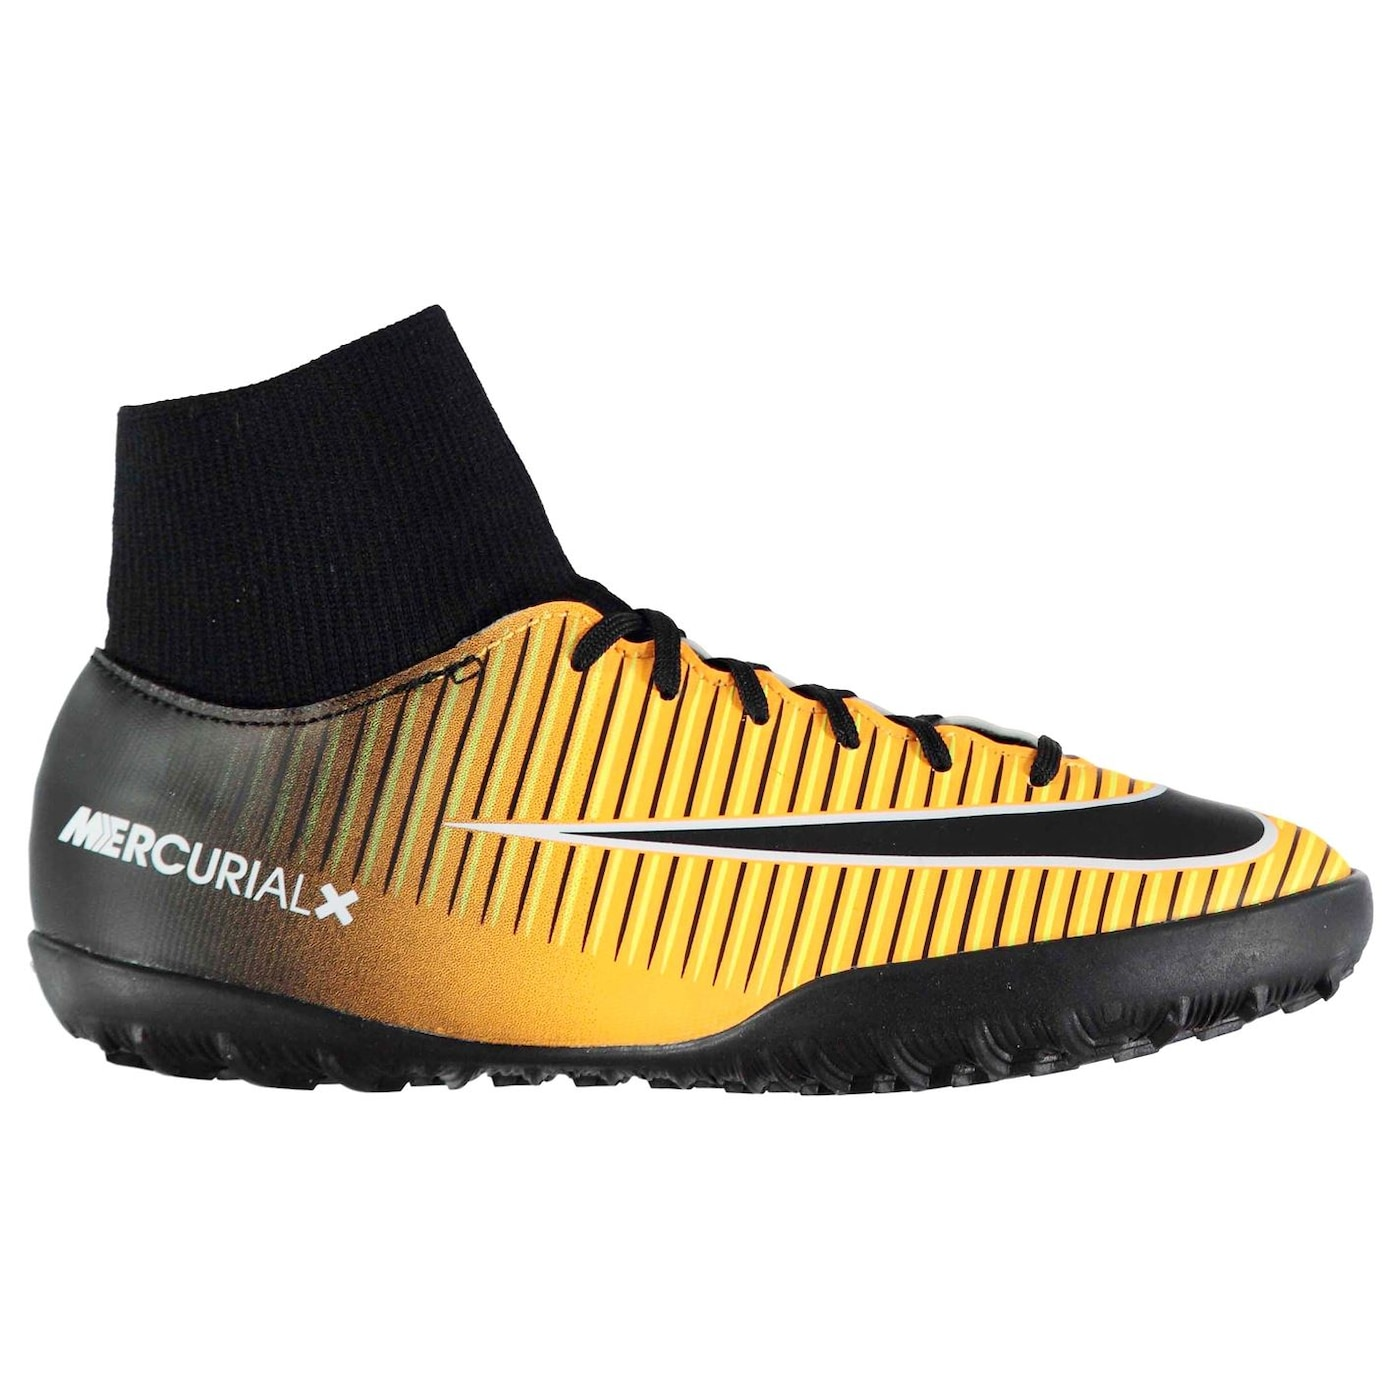 Nike Mercurial Victory Dynamic Fit TF Football Boots Junior Boys